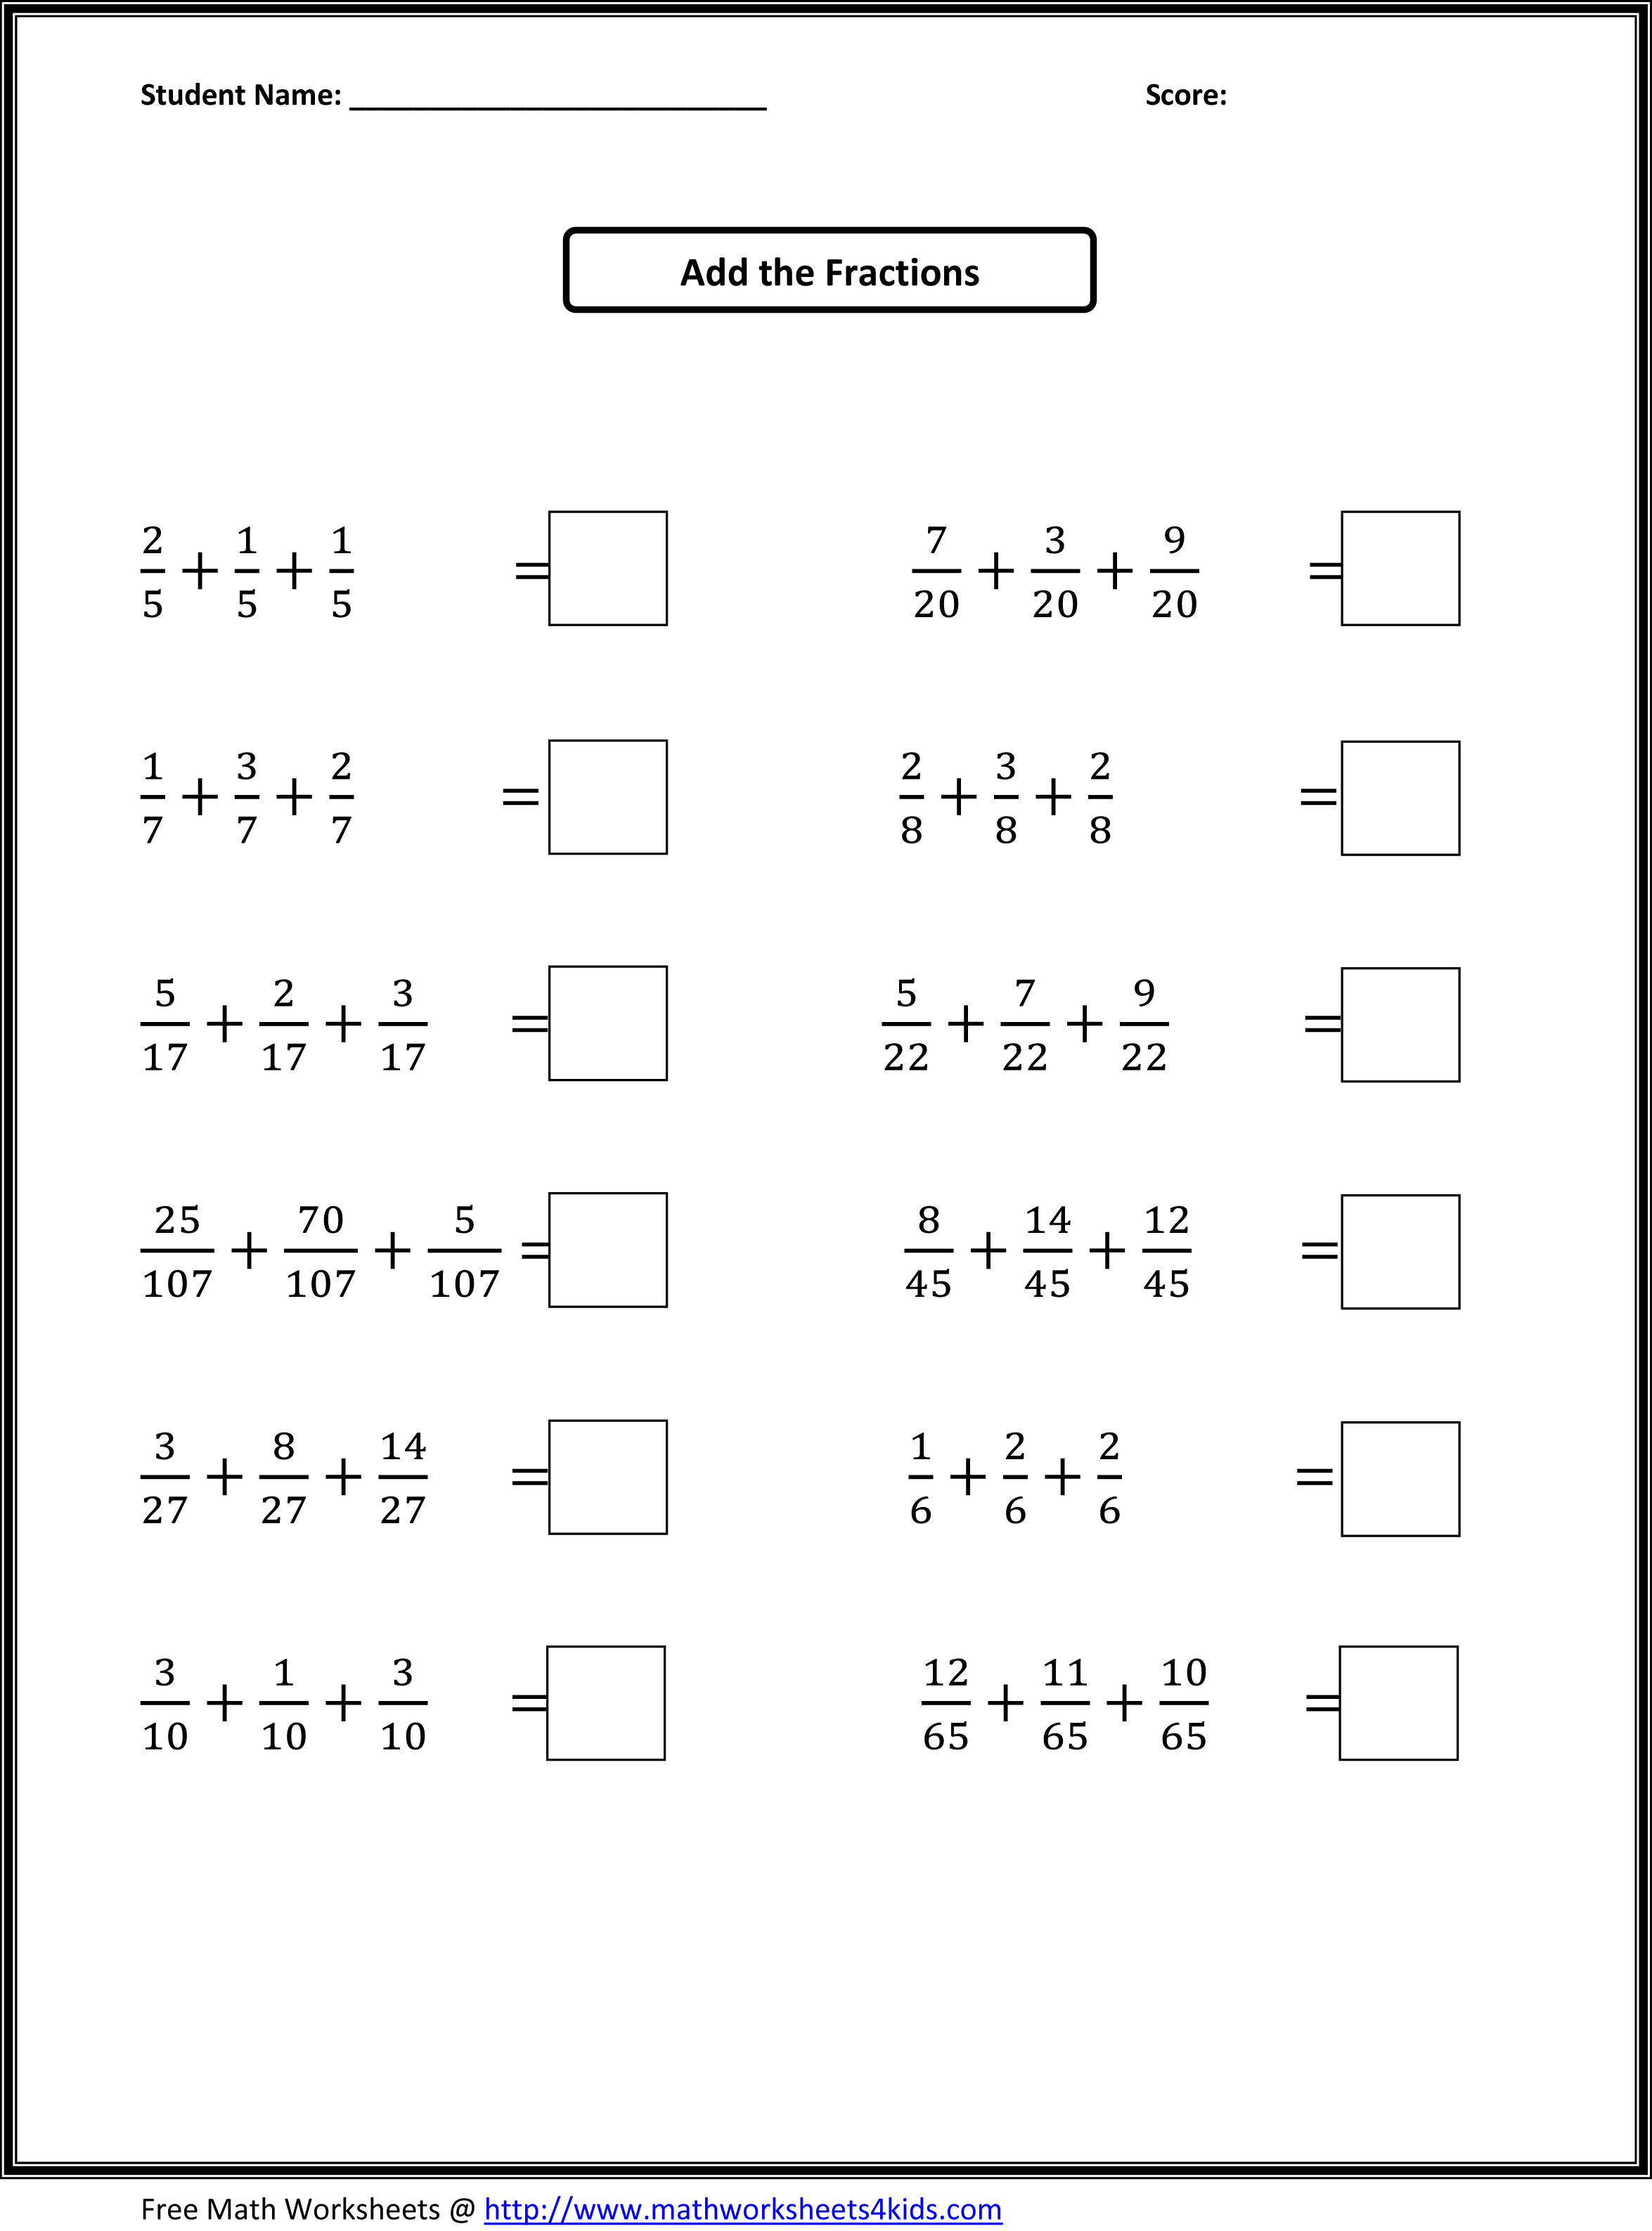 math worksheet : 4th grade math worksheets multiplying fractions  kids activities : Free Multiplying Fractions Worksheets